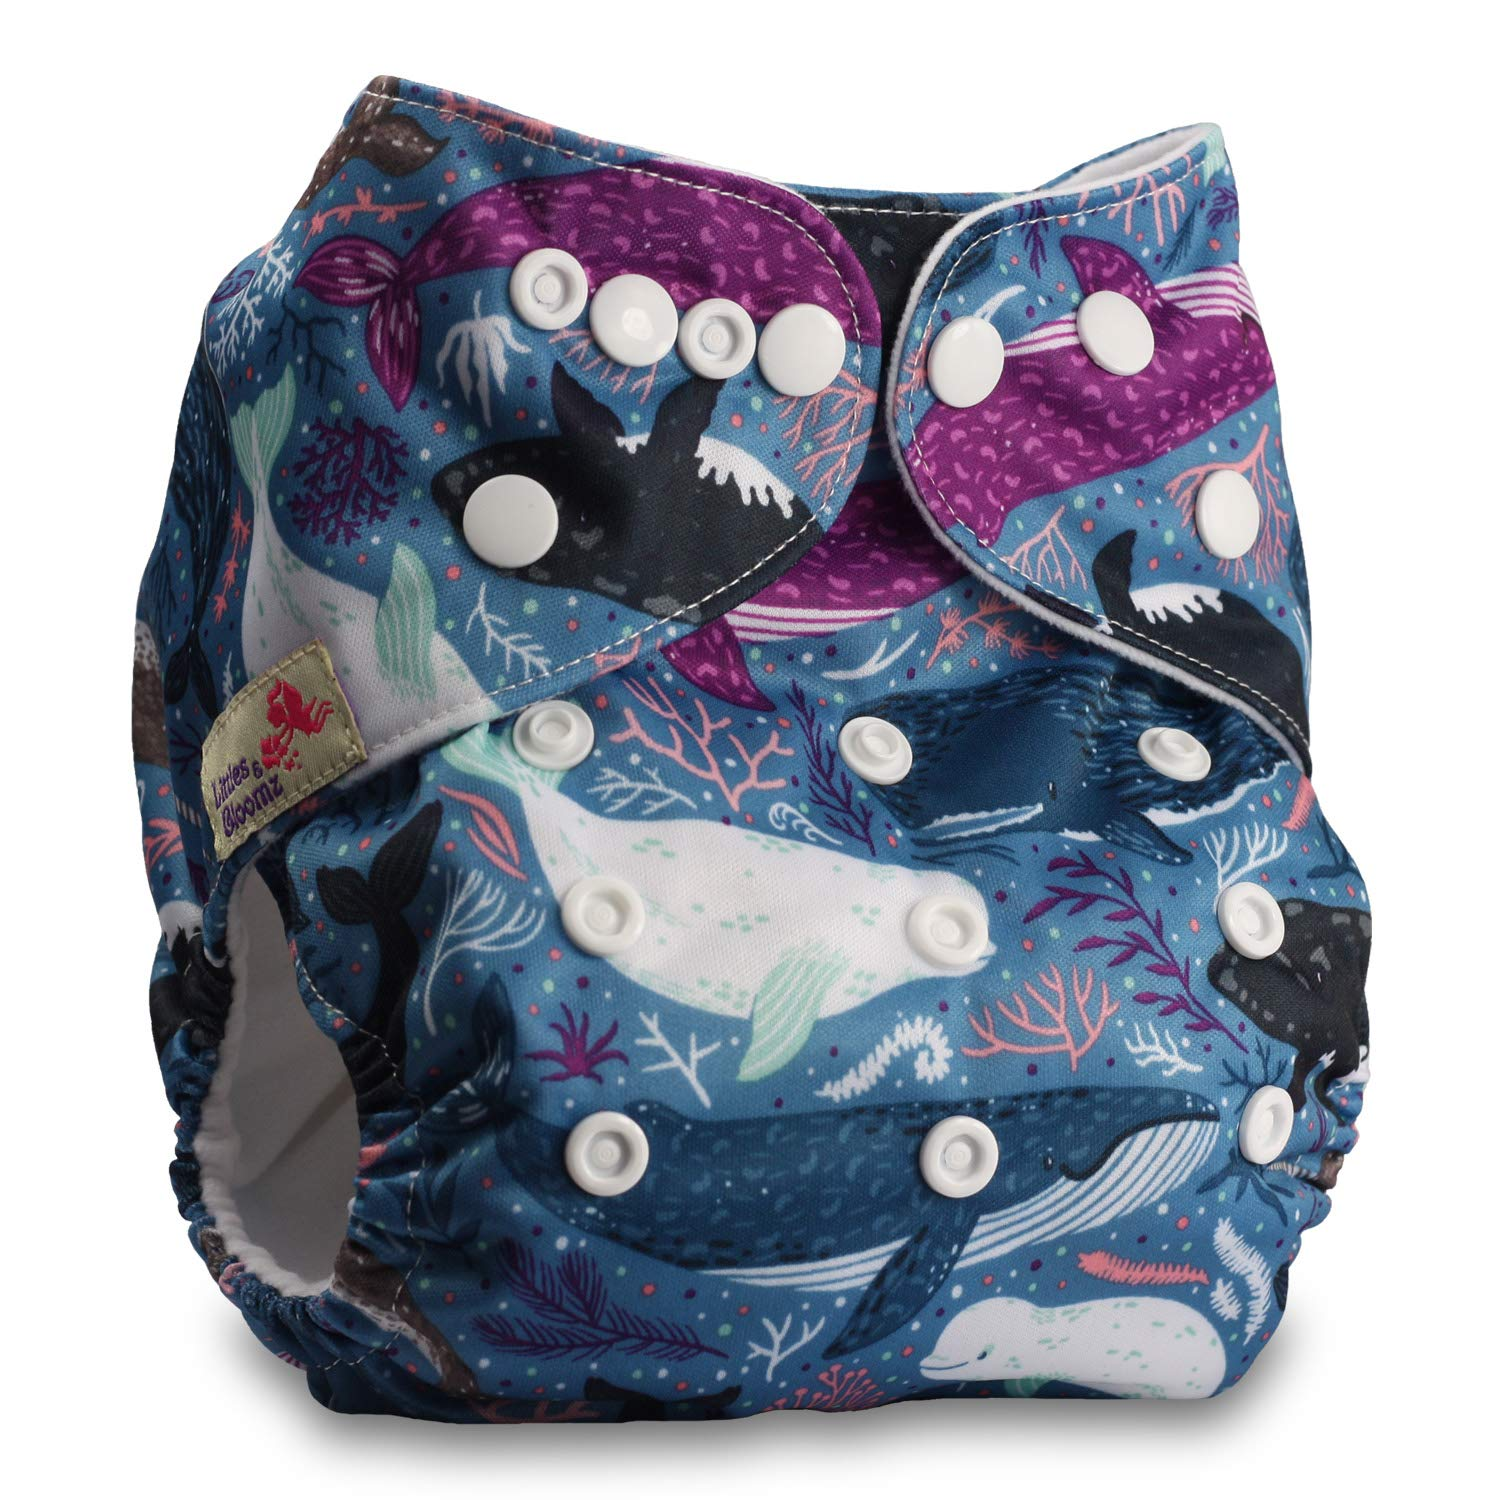 Set of 1 Reusable Pocket Cloth Nappy Pattern 86 Fastener: Popper Without Insert Littles /& Bloomz